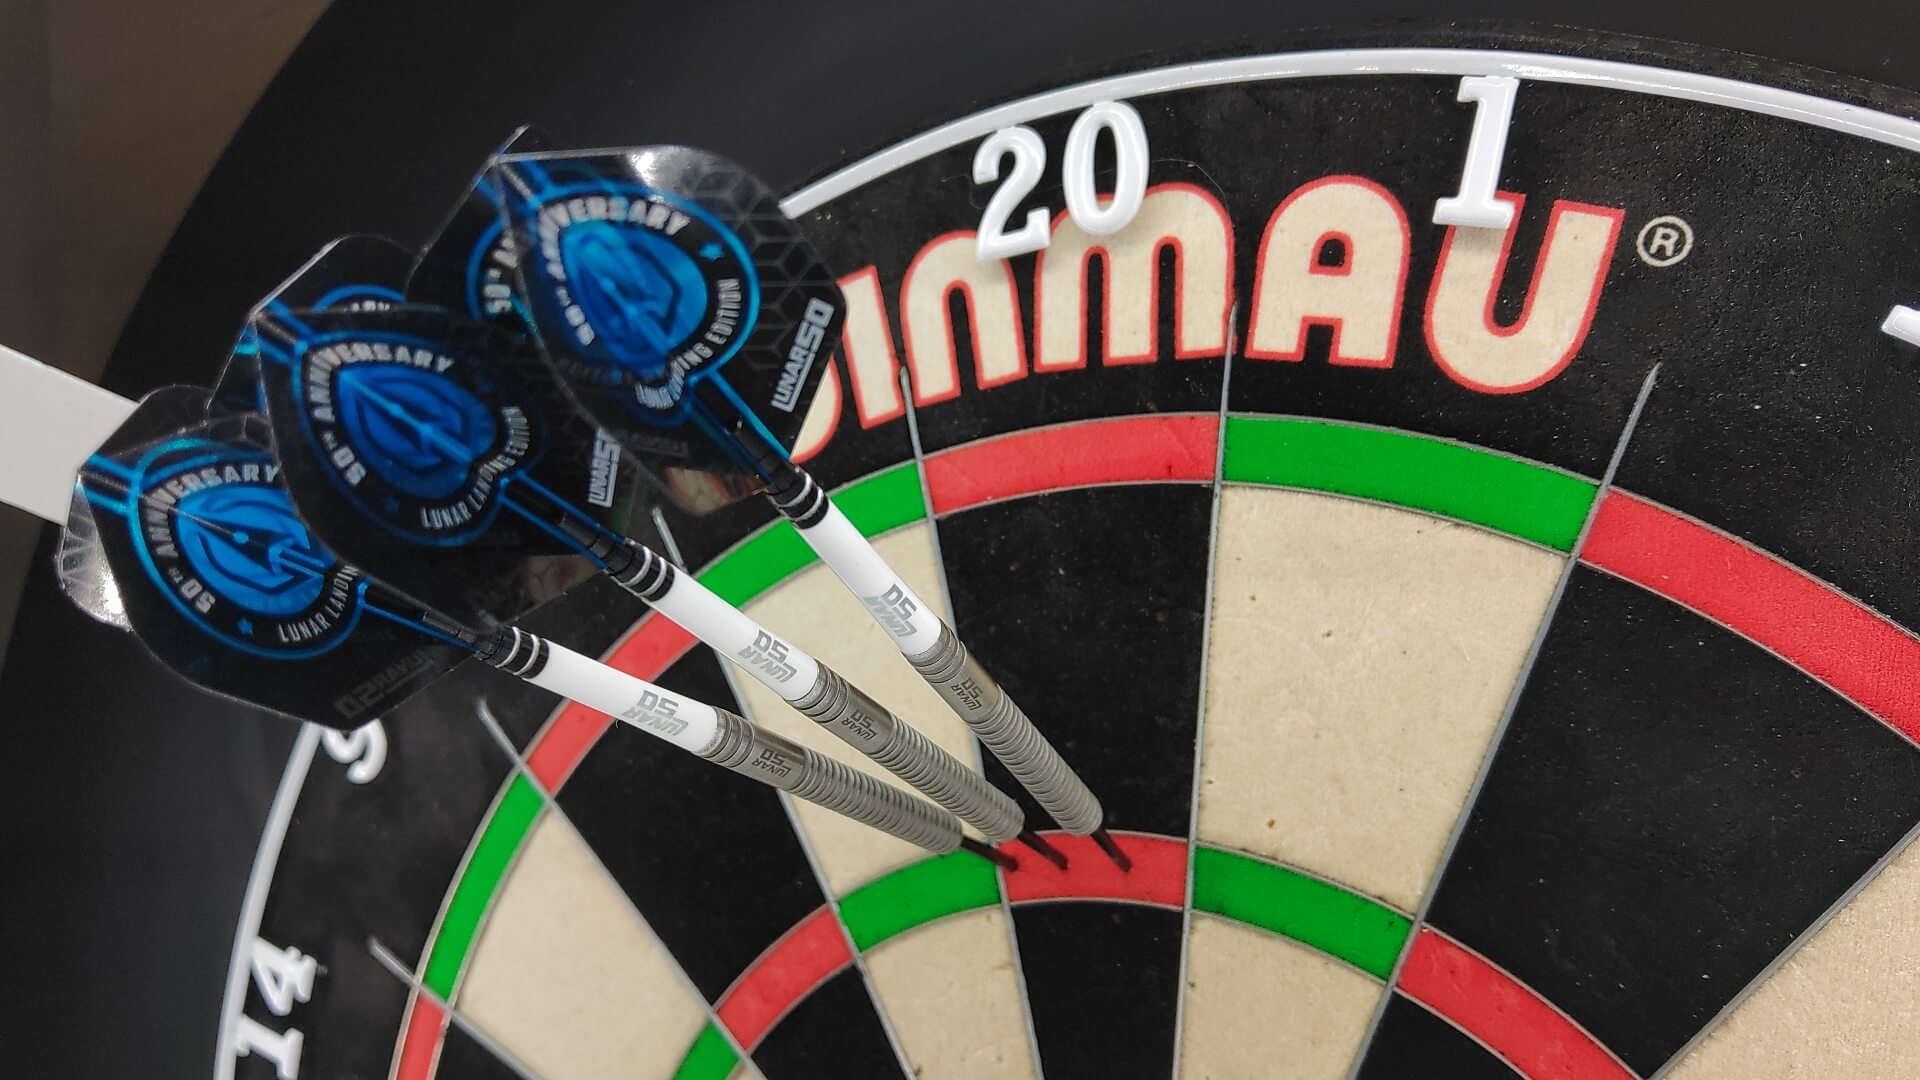 Red Dragon Lunar 50 Jamie Hughes Steeldarts